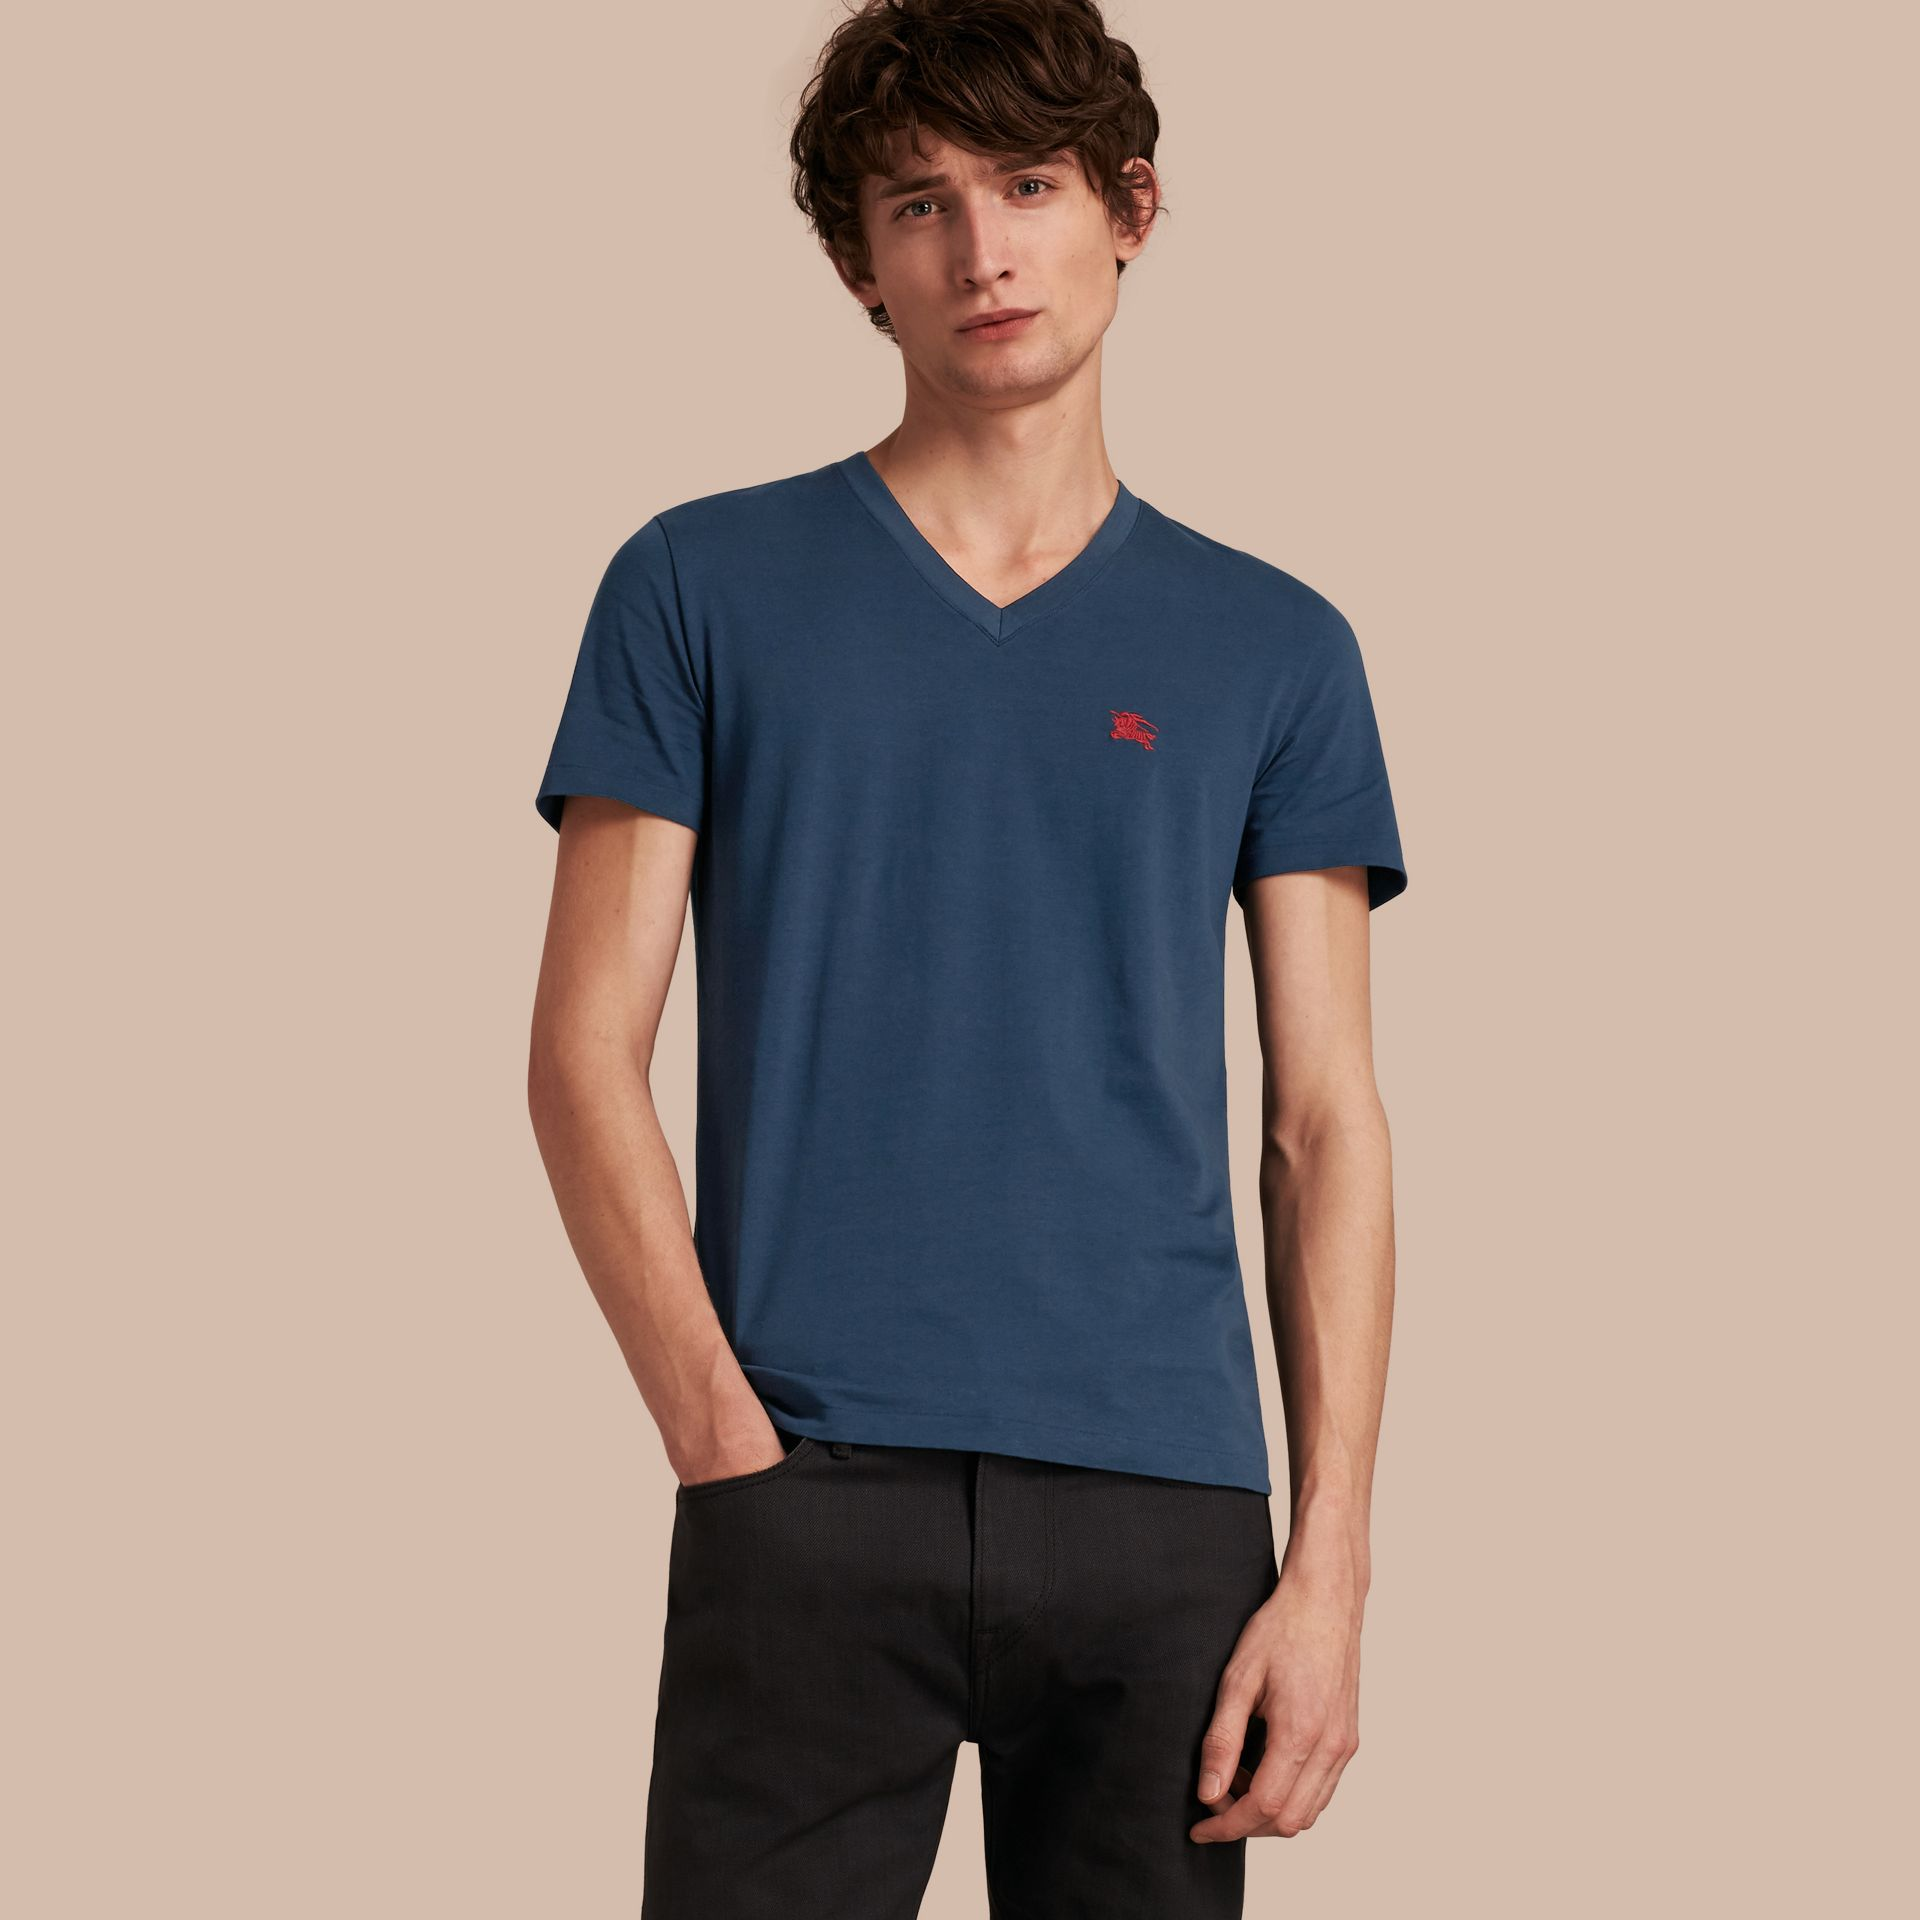 Cotton V-neck T-shirt in Navy - Men | Burberry - gallery image 1